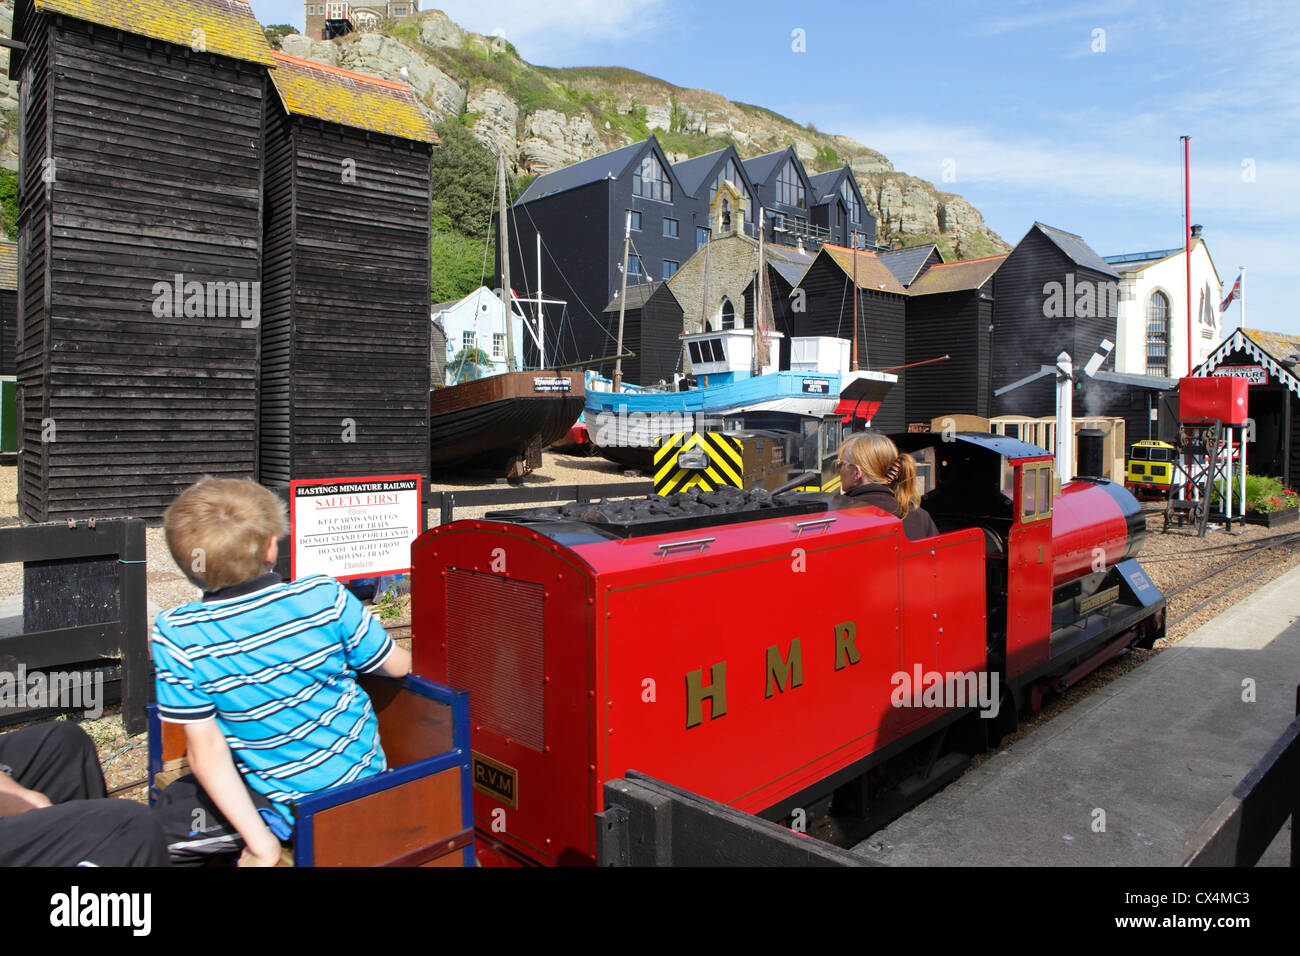 Miniature railway train engine at Rock-a-Nore, Hastings seafront, East Sussex, England, UK, GB - Stock Image